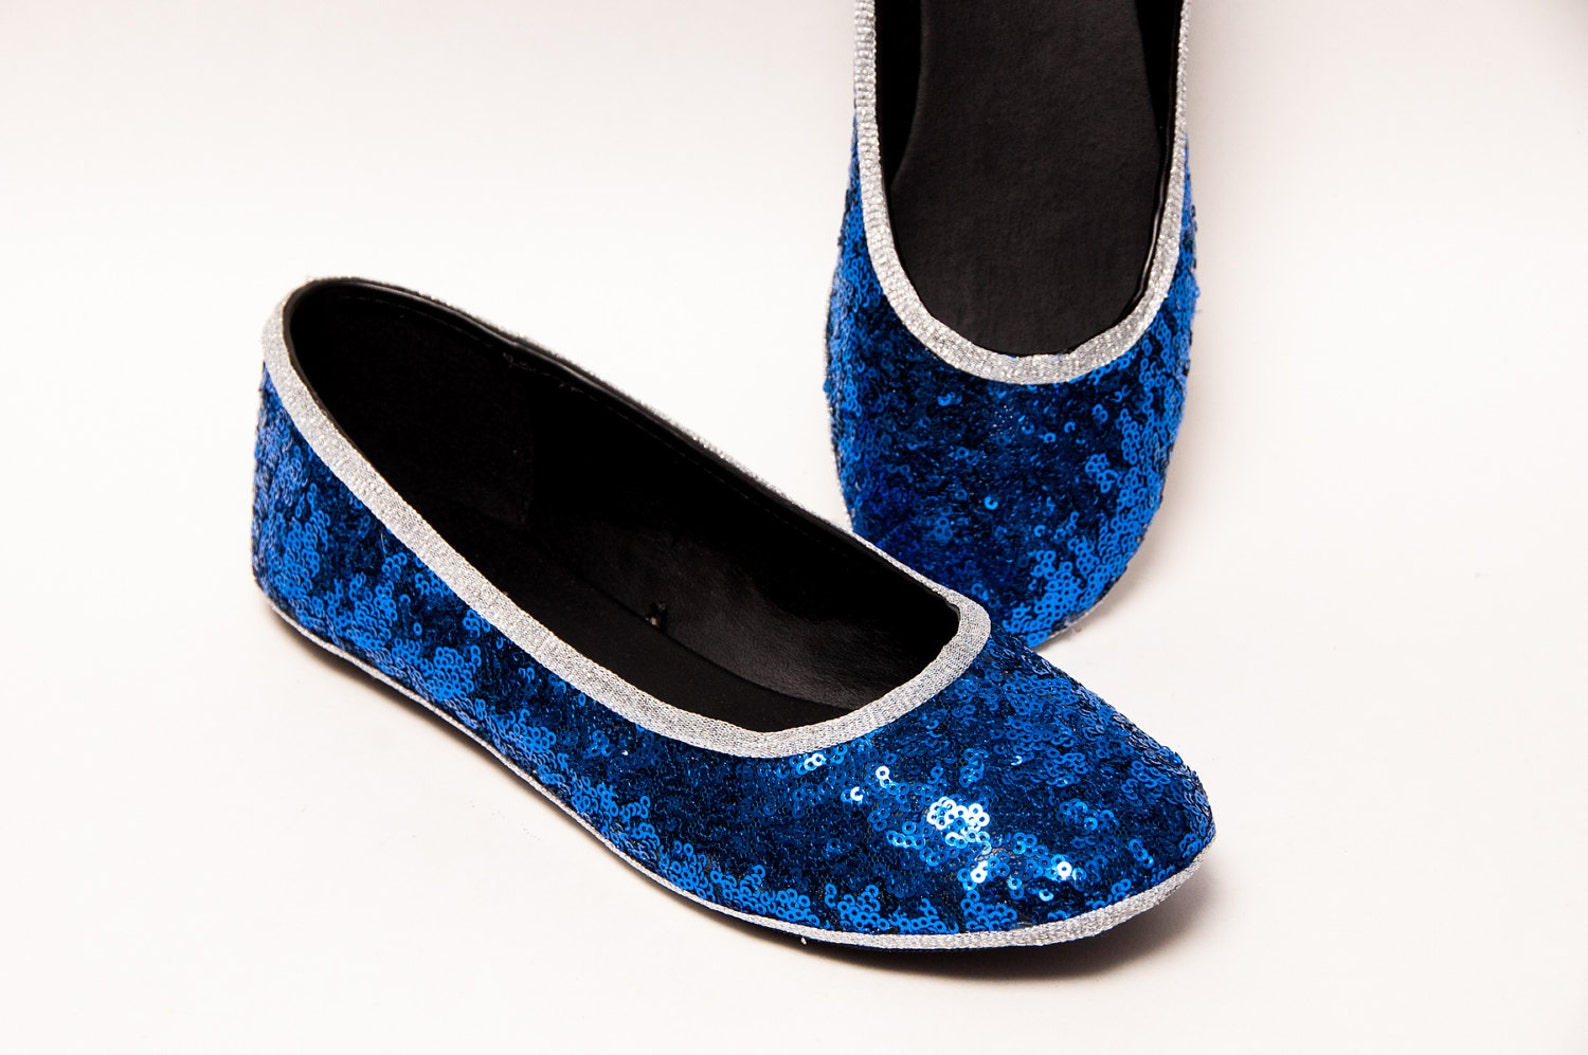 tiny sequin - starlight sapphire blue with silver accent trim custom ballet flats slippers shoes